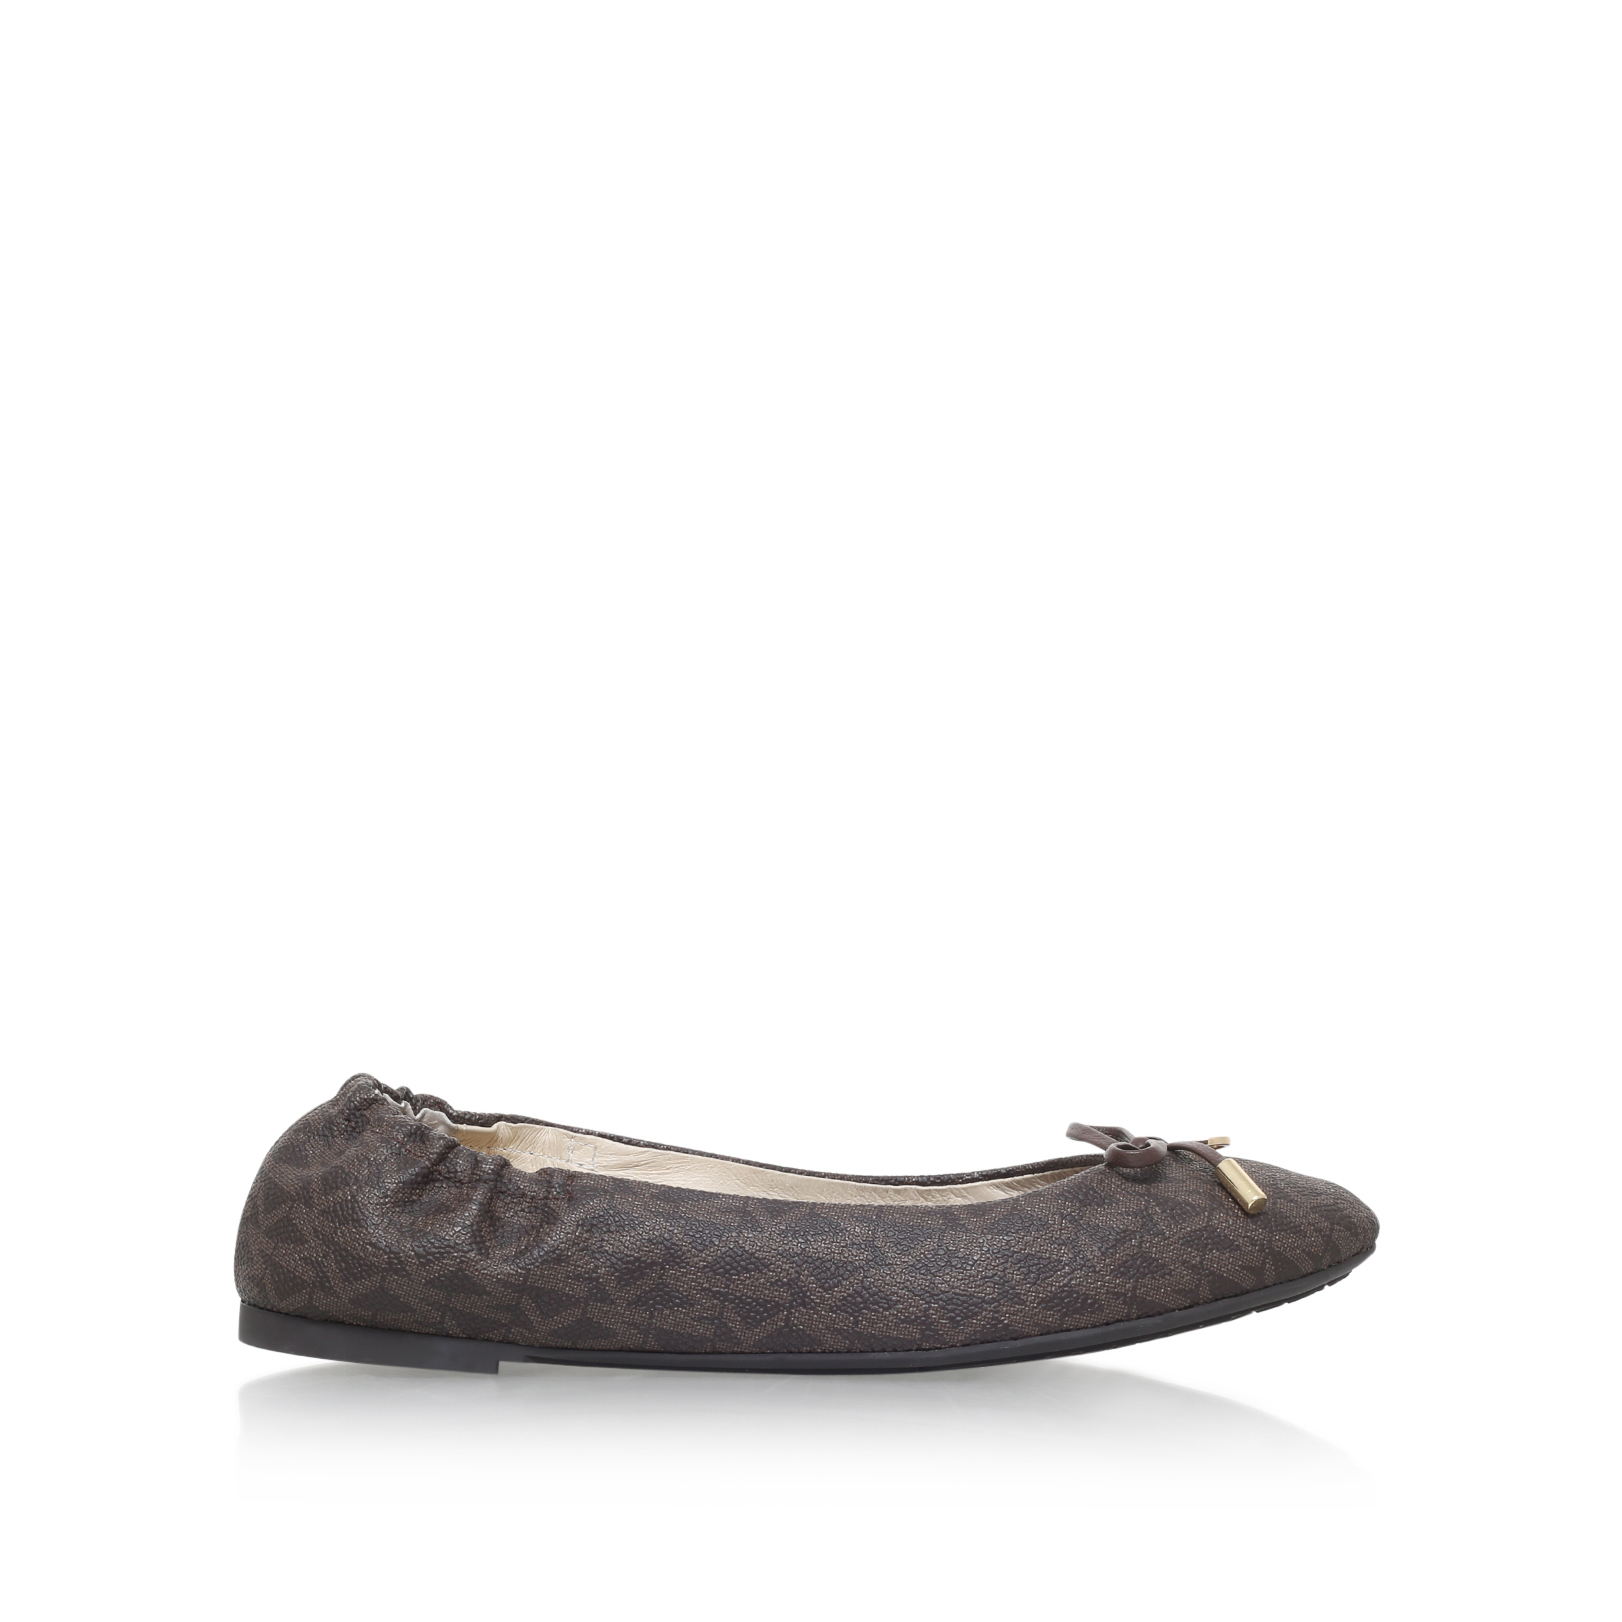 melody ballet michael michael kors melody ballet brown leather flats by michael michael kors. Black Bedroom Furniture Sets. Home Design Ideas